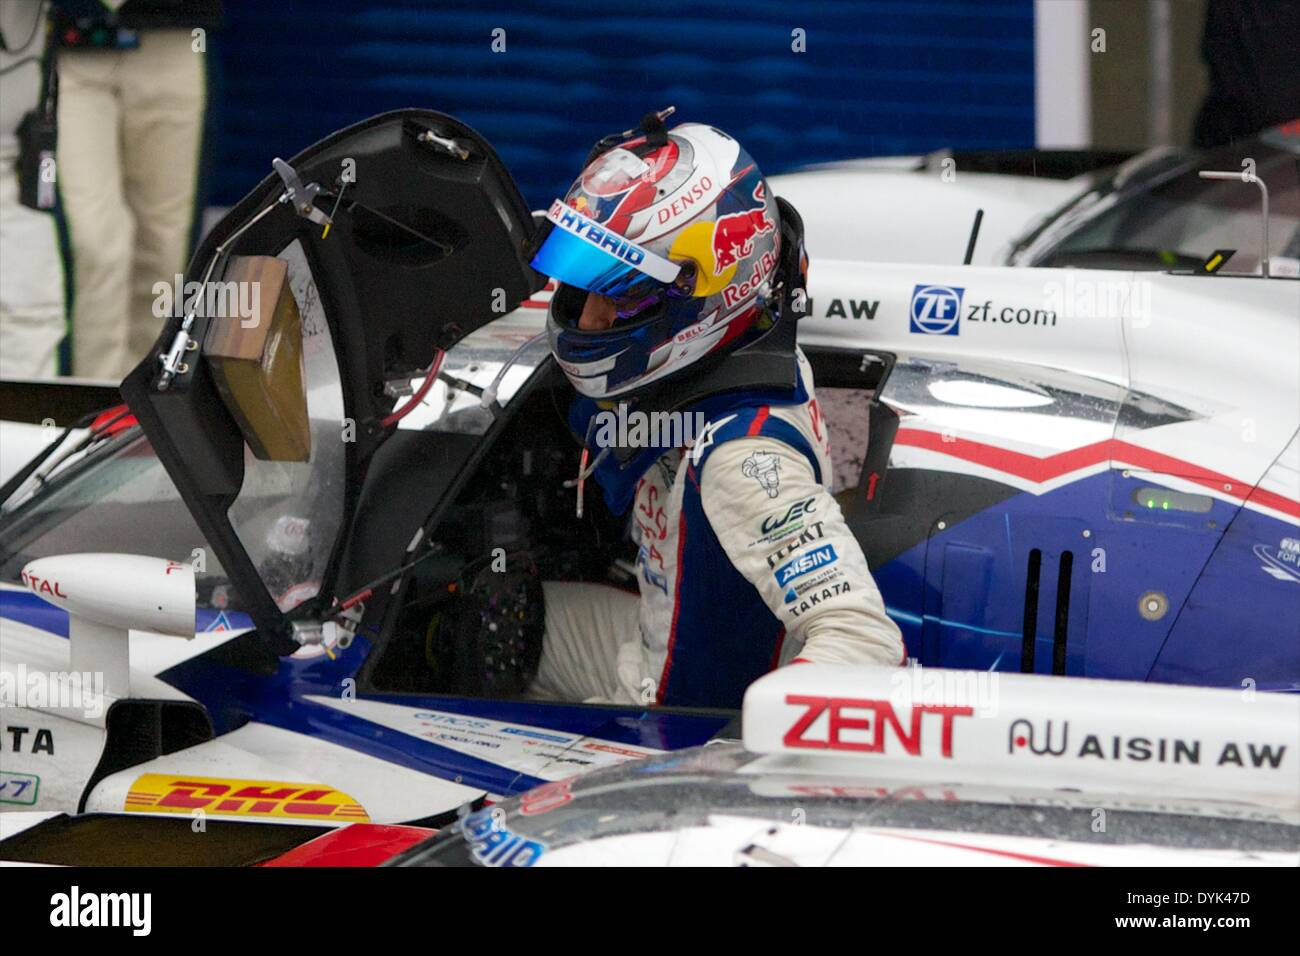 Silverstone, UK. 20th Apr, 2014. Sebastien Buemi climbs out of his Toyota after winning round 1 of the World Endurance Stock Photo